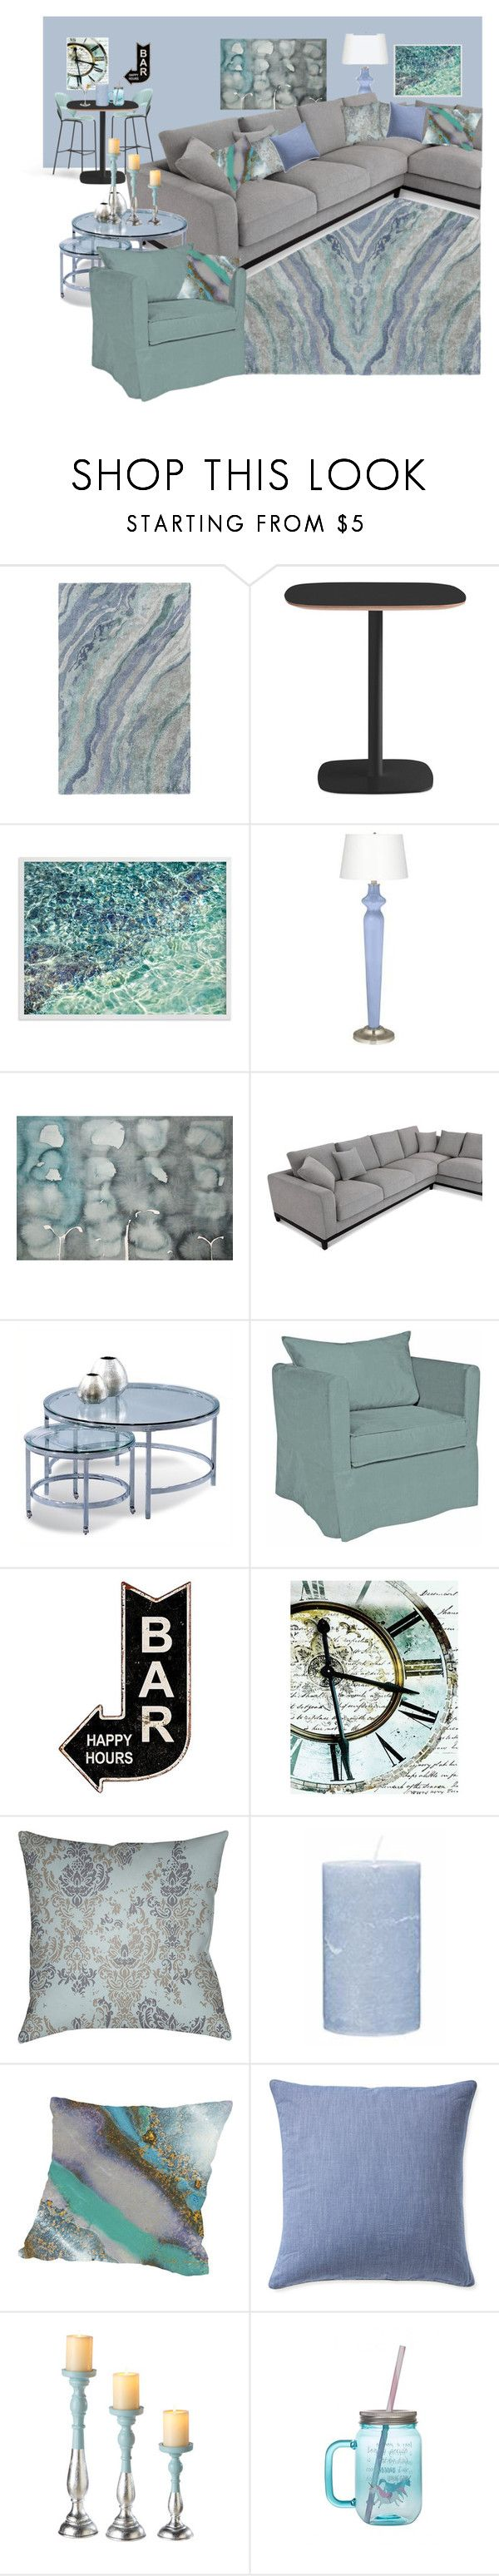 """""""Pastels and grey"""" by ningaunis ❤ liked on Polyvore featuring interior, interiors, interior design, home, home decor, interior decorating, Normann Copenhagen, Basset Mirror Company, Howard Elliott and Décor 140"""